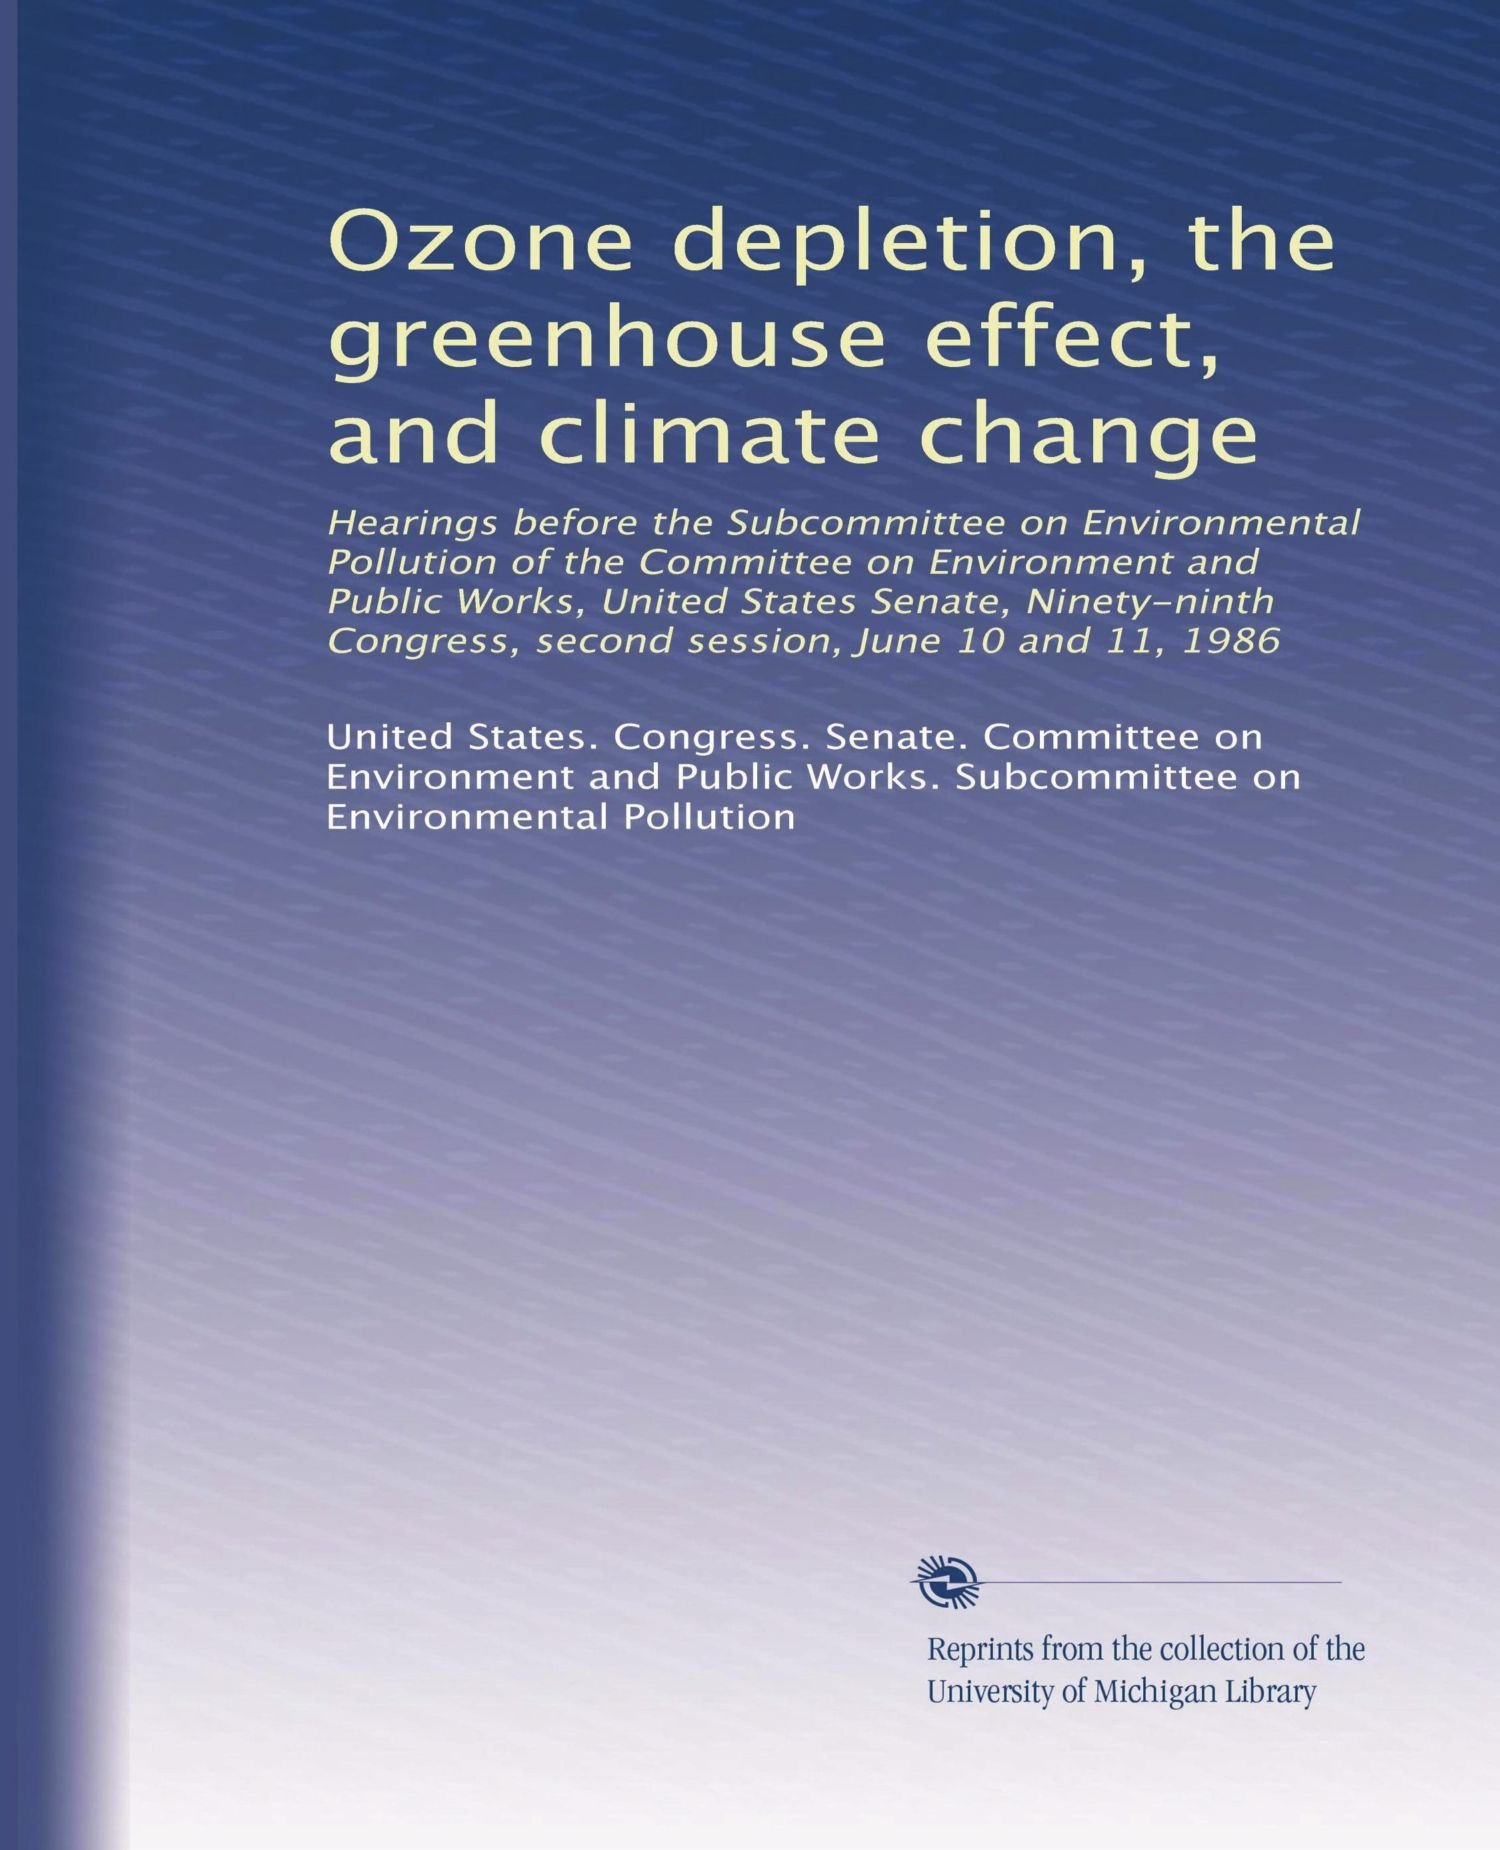 Ozone depletion, the greenhouse effect, and climate change: Hearings before the Subcommittee on Environmental Pollution of the Committee on ... second session, June 10 and 11, 1986